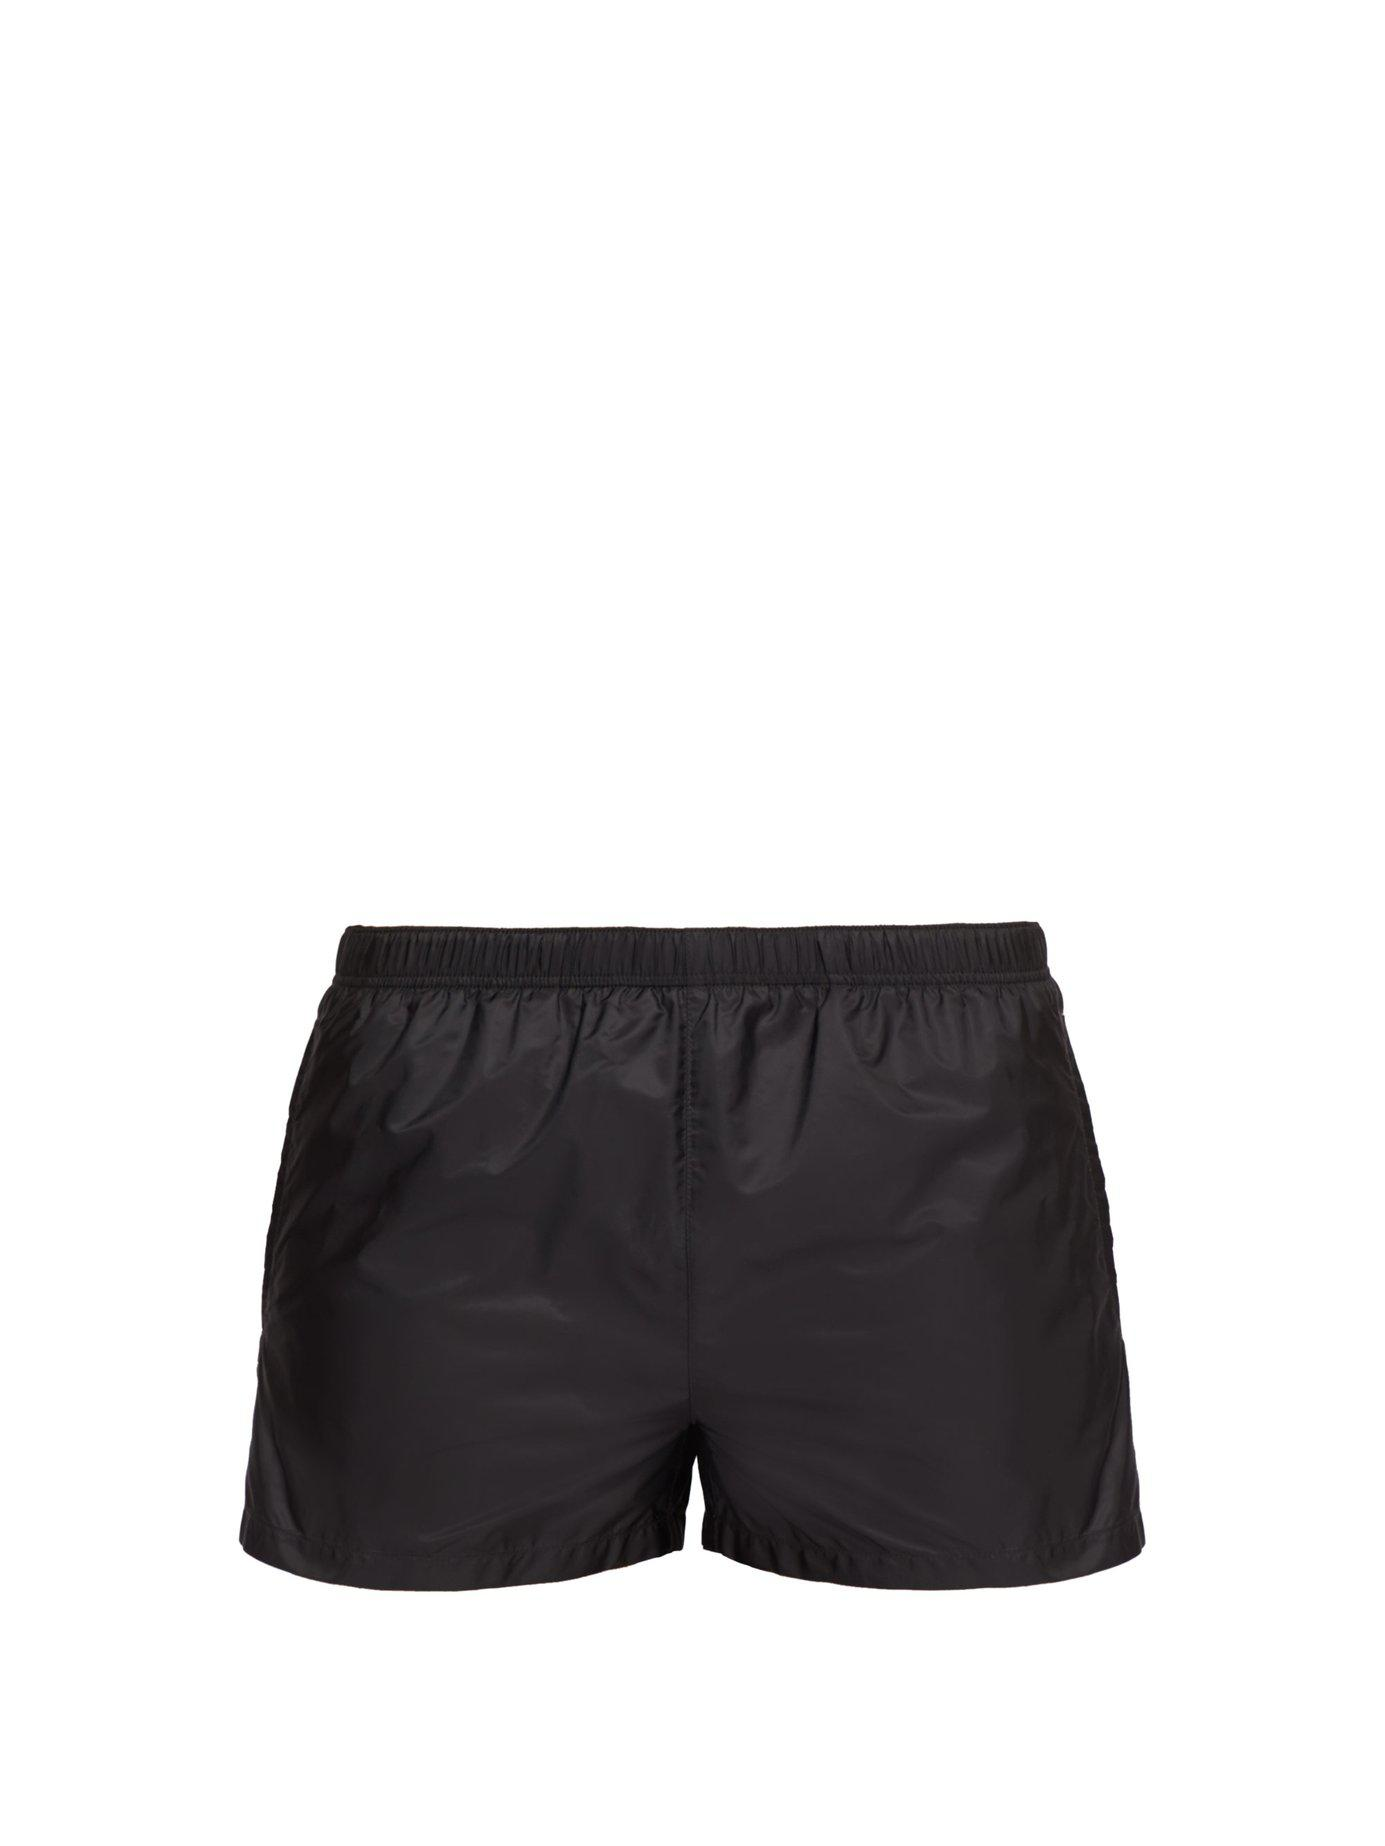 f1acbce4589 Lyst - Prada Elasticated Waist Nylon Swim Shorts in Gray for Men